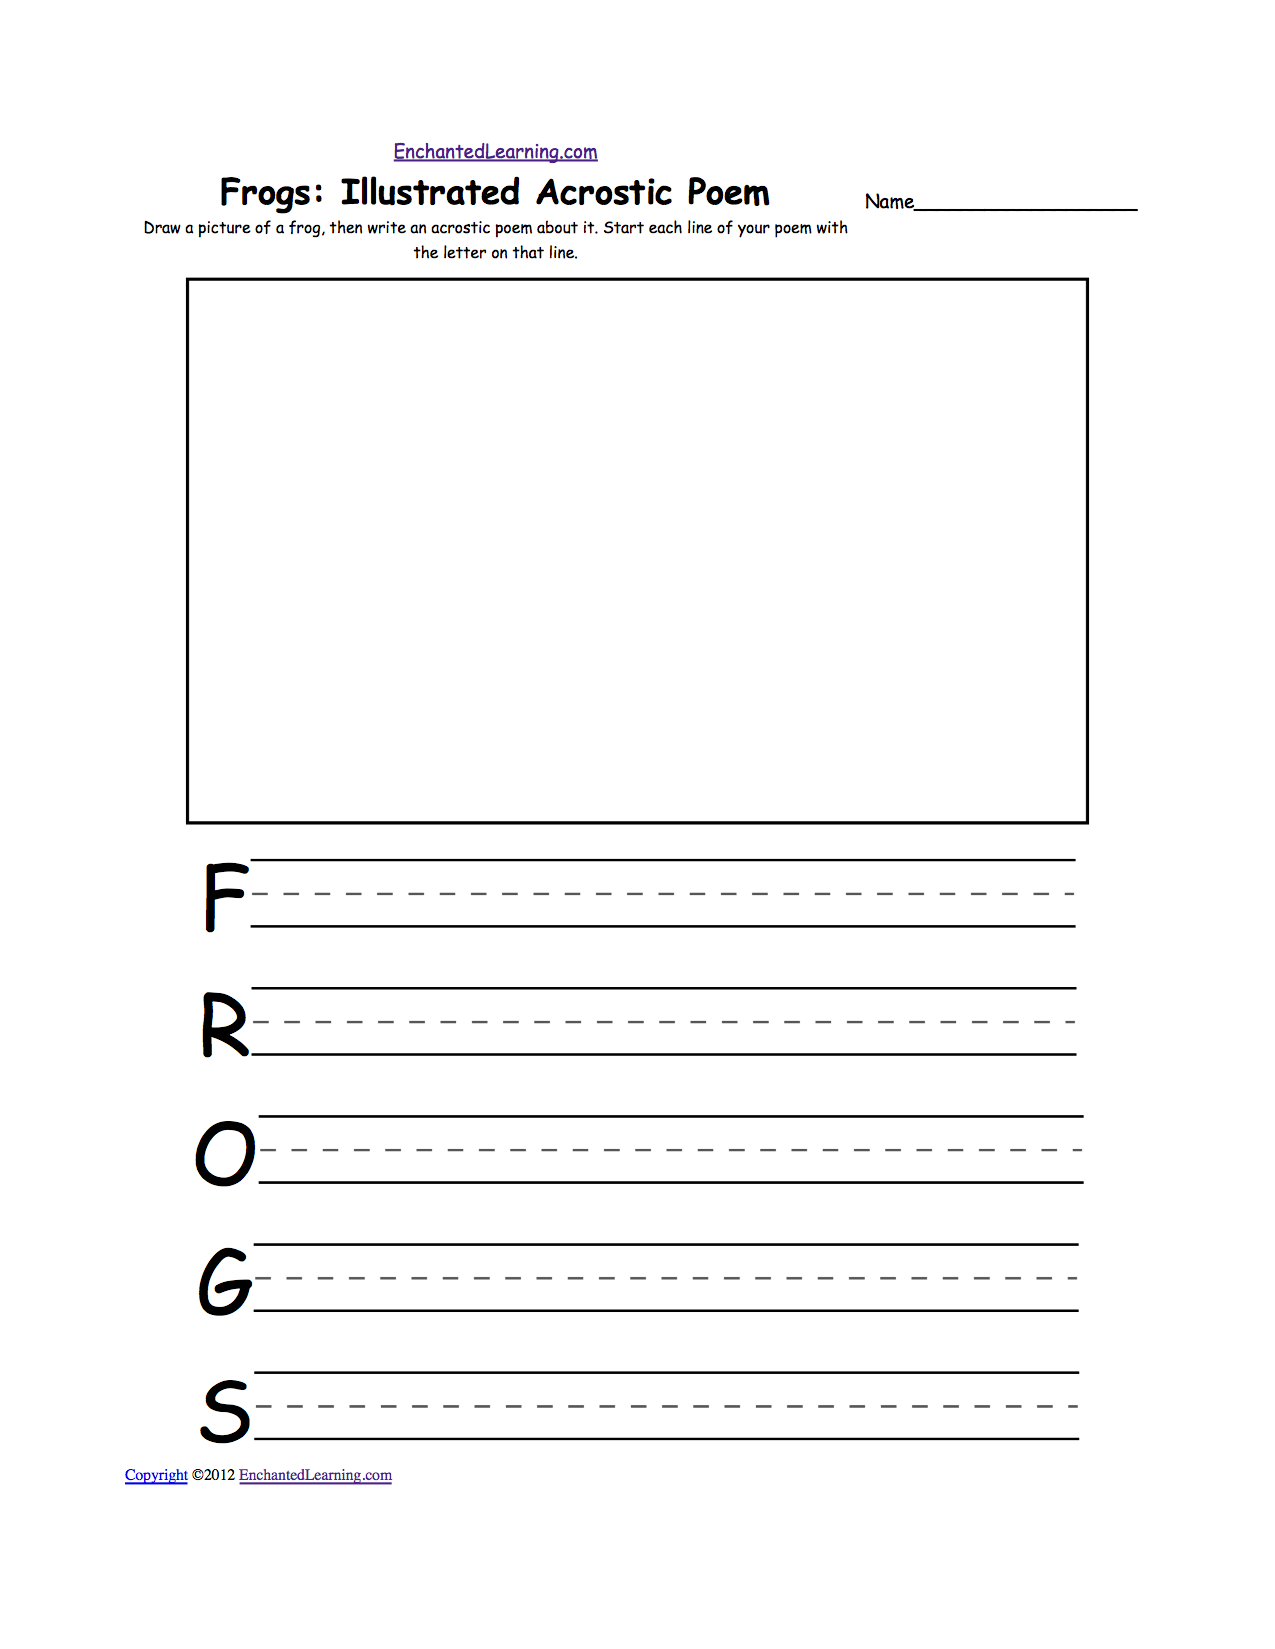 Frog: Illustrated Acrostic Poem